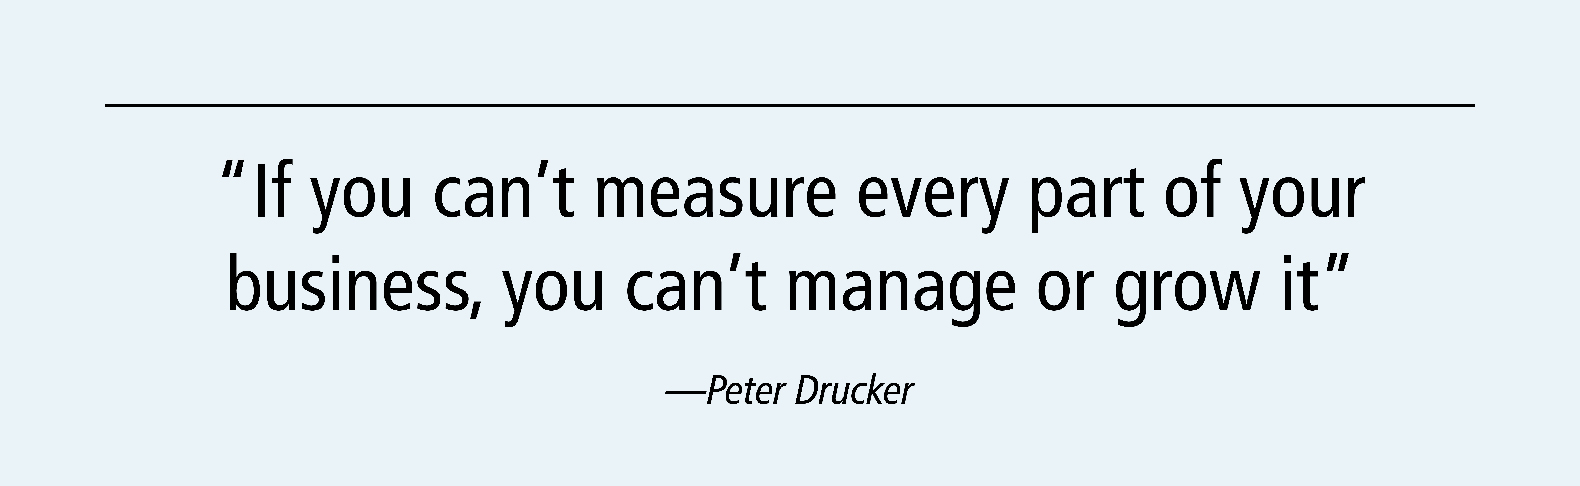 Peter-Drucker-pull-quote2.jpg